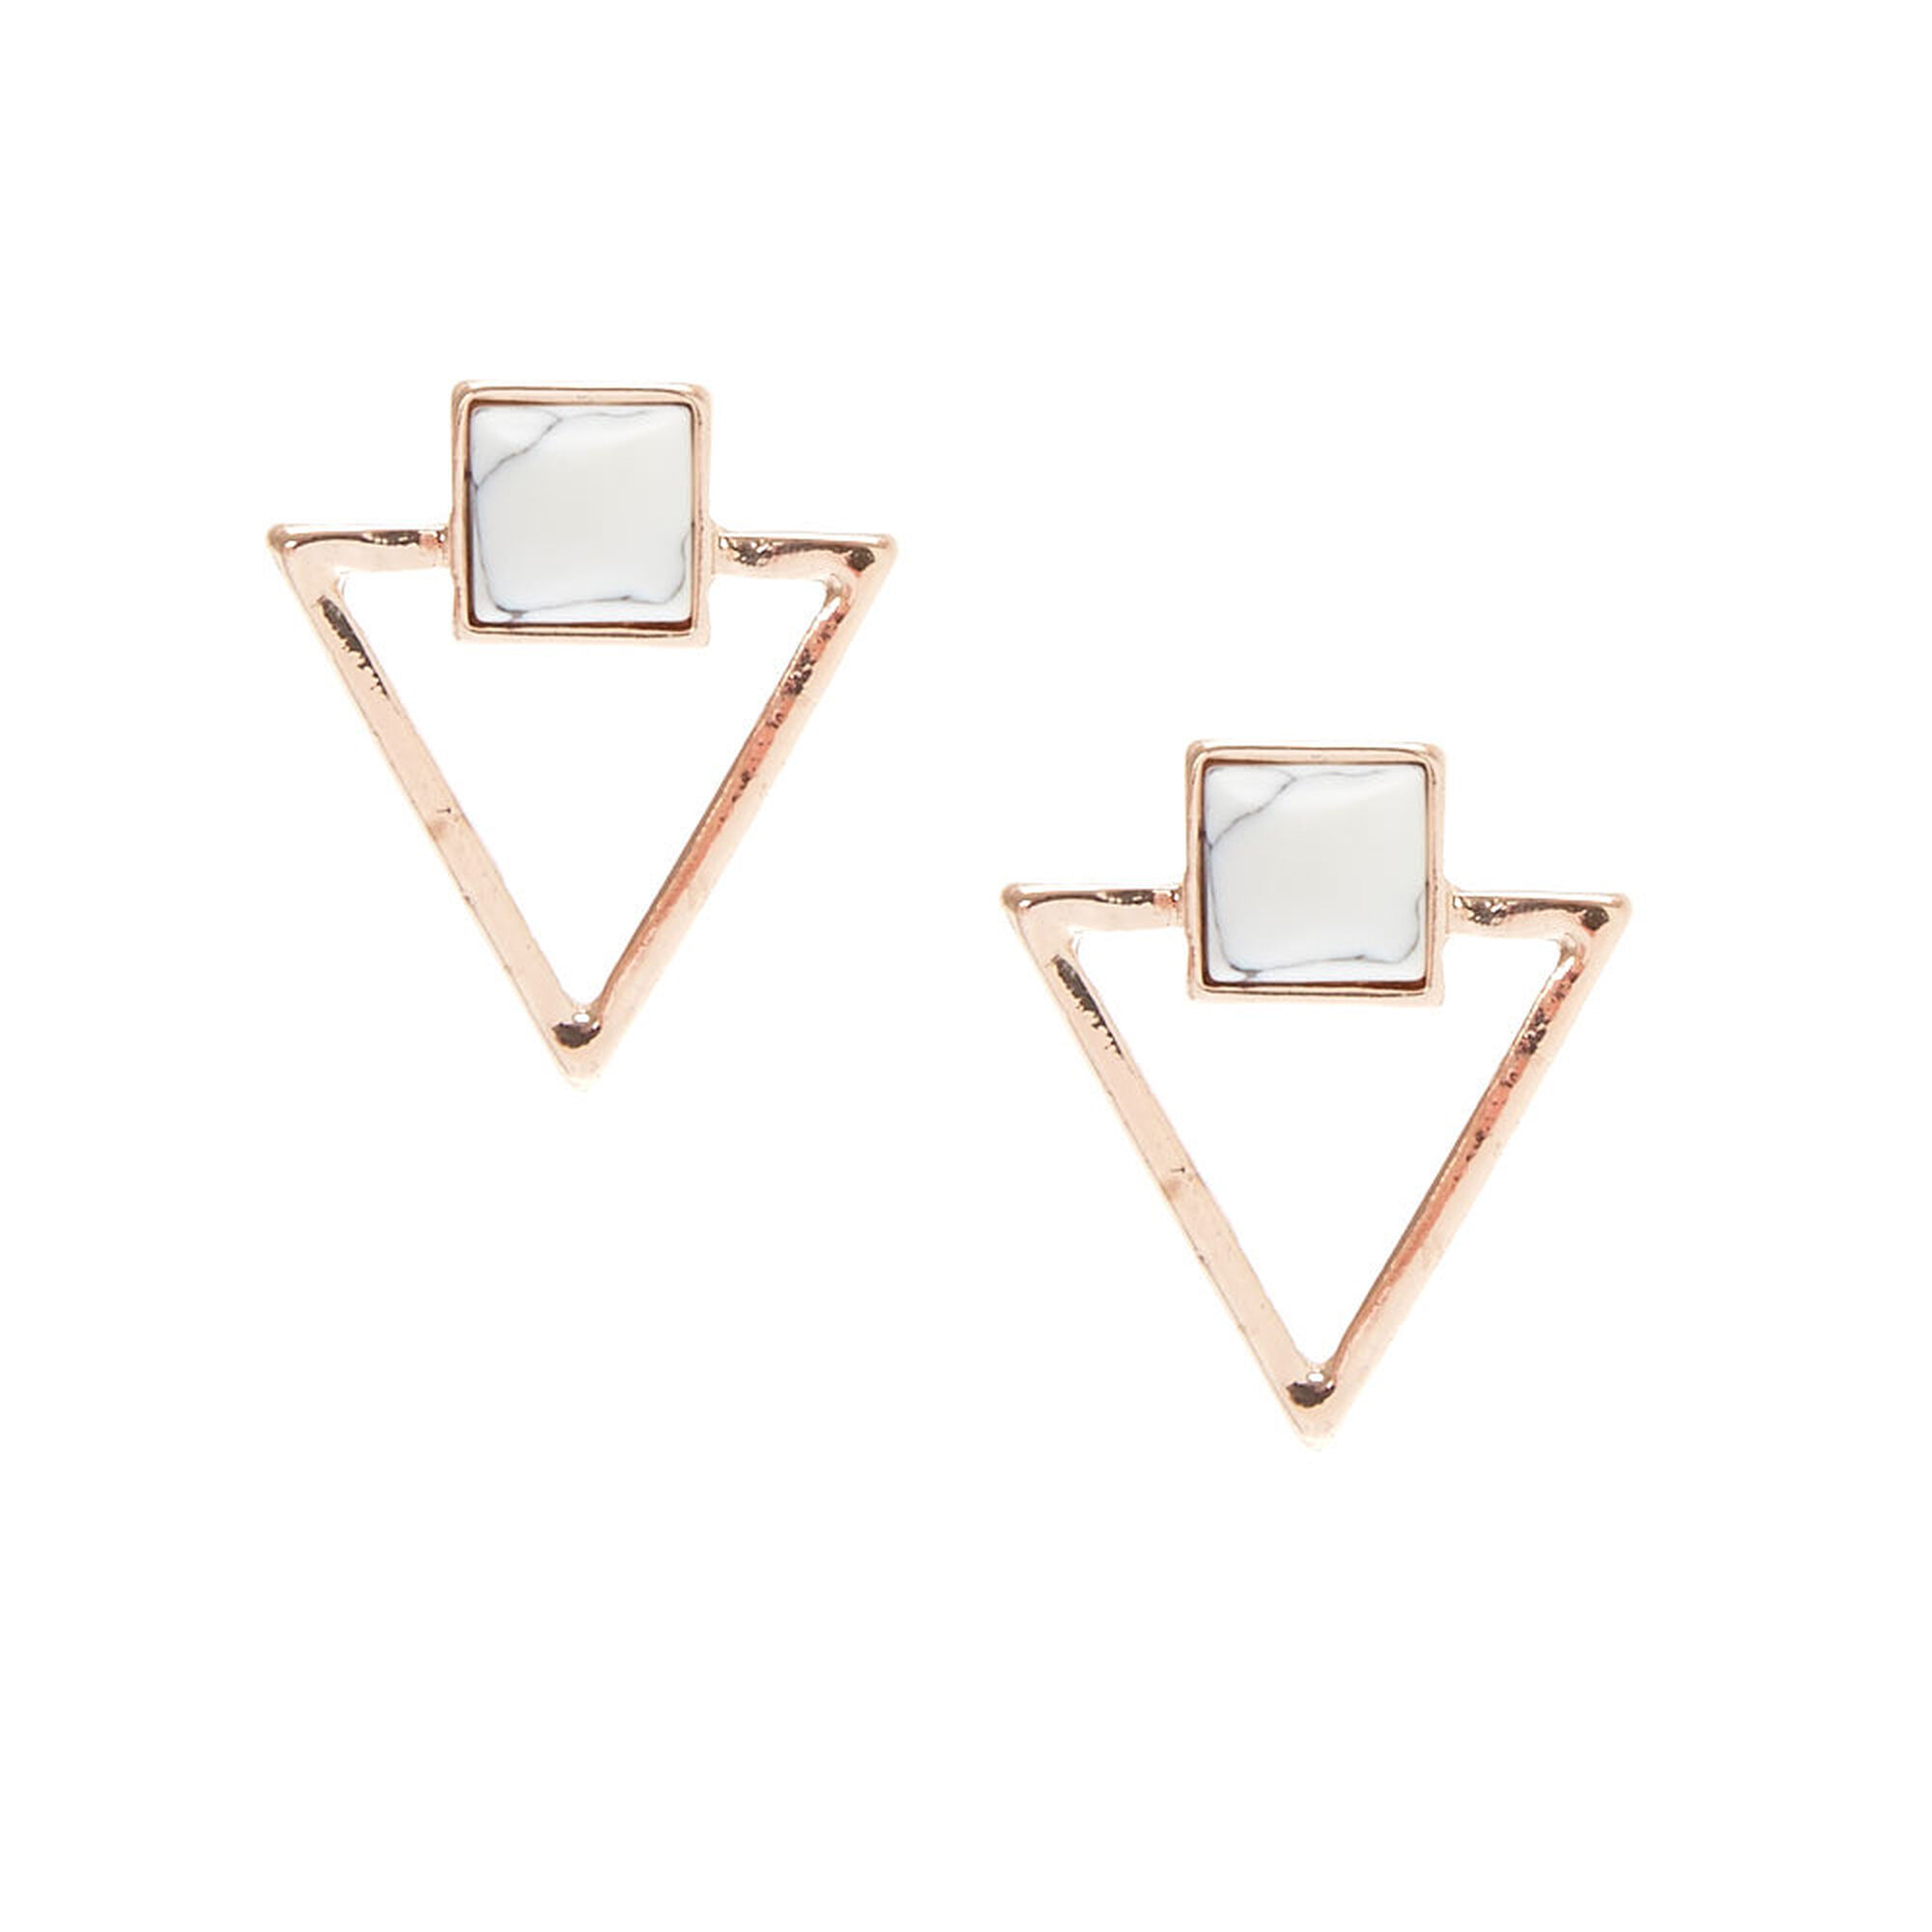 98f385096 Rose Gold & Marble Triangle Stud Earrings | Icing US